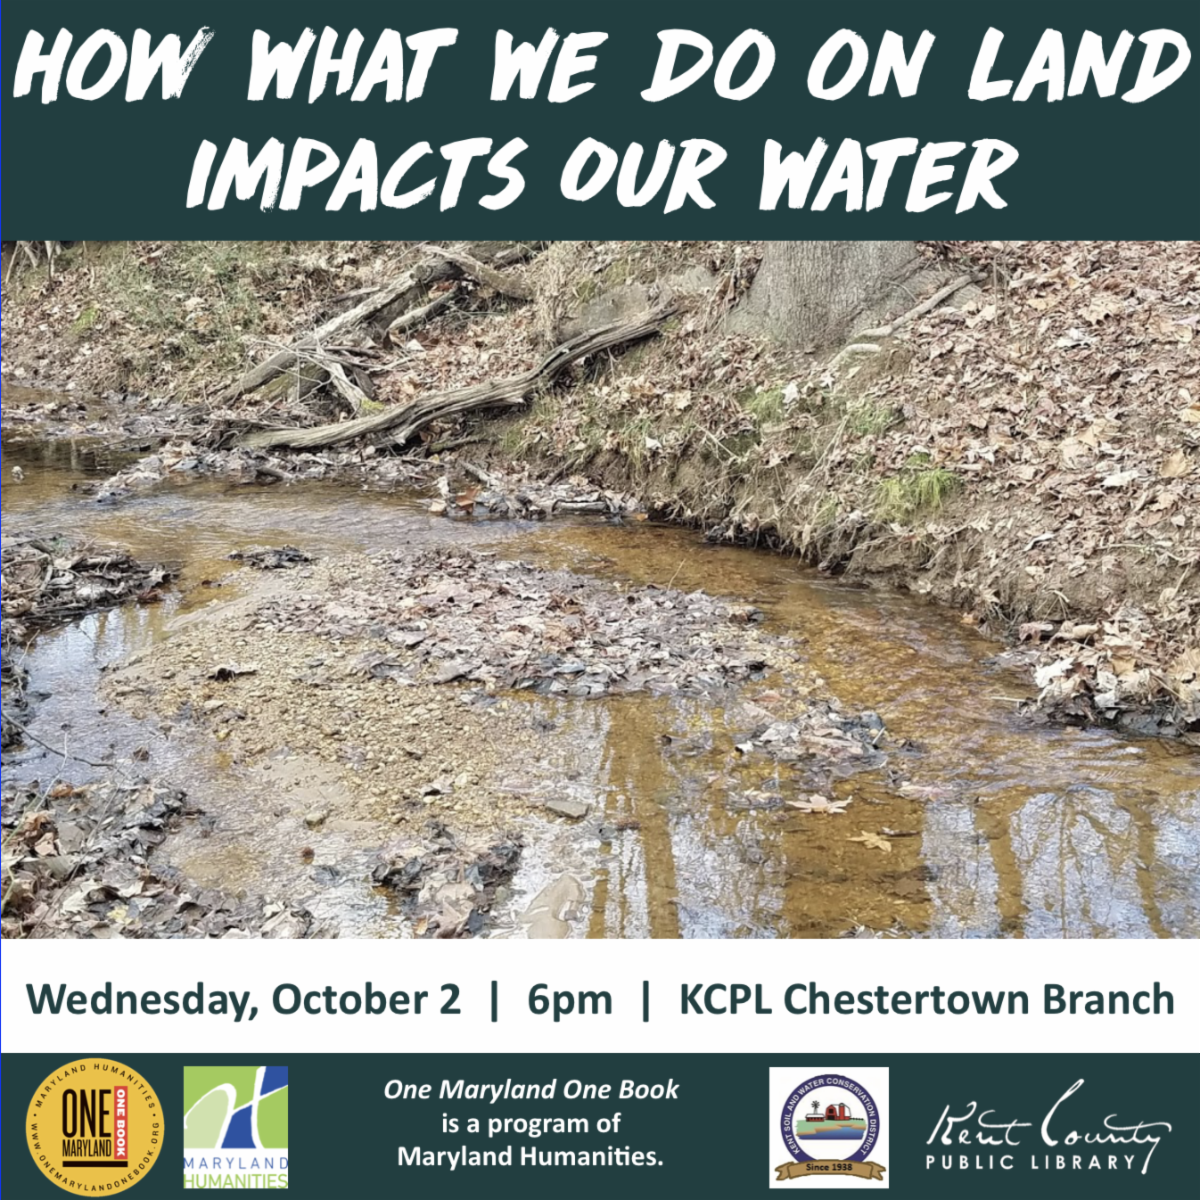 How What We Do On Land Impacts Our Water: A One Maryland One Book Program